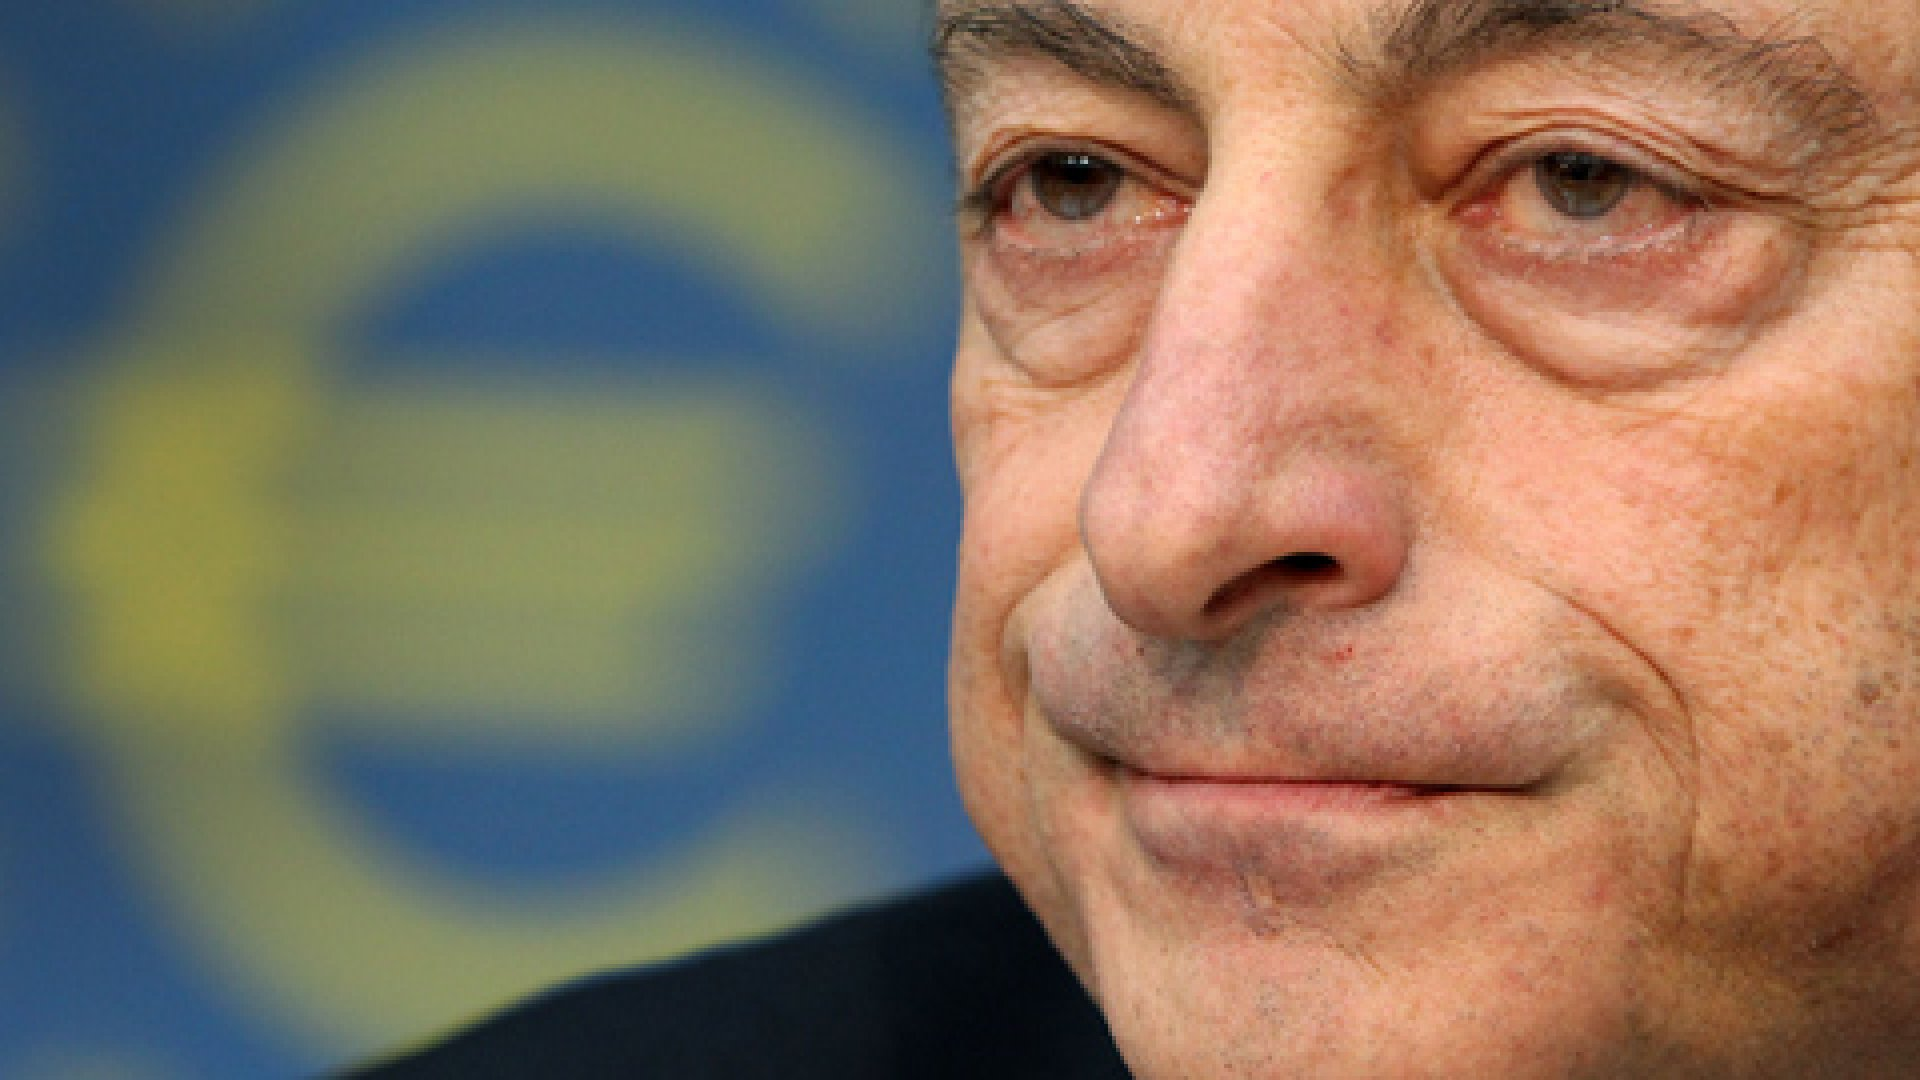 Mario Draghi, President of the European Central Bank, ECB addresses the media during a press conference following the meeting of the ECB Governing Council in Frankfurt am Main, western Germany, on December 8, 2011.